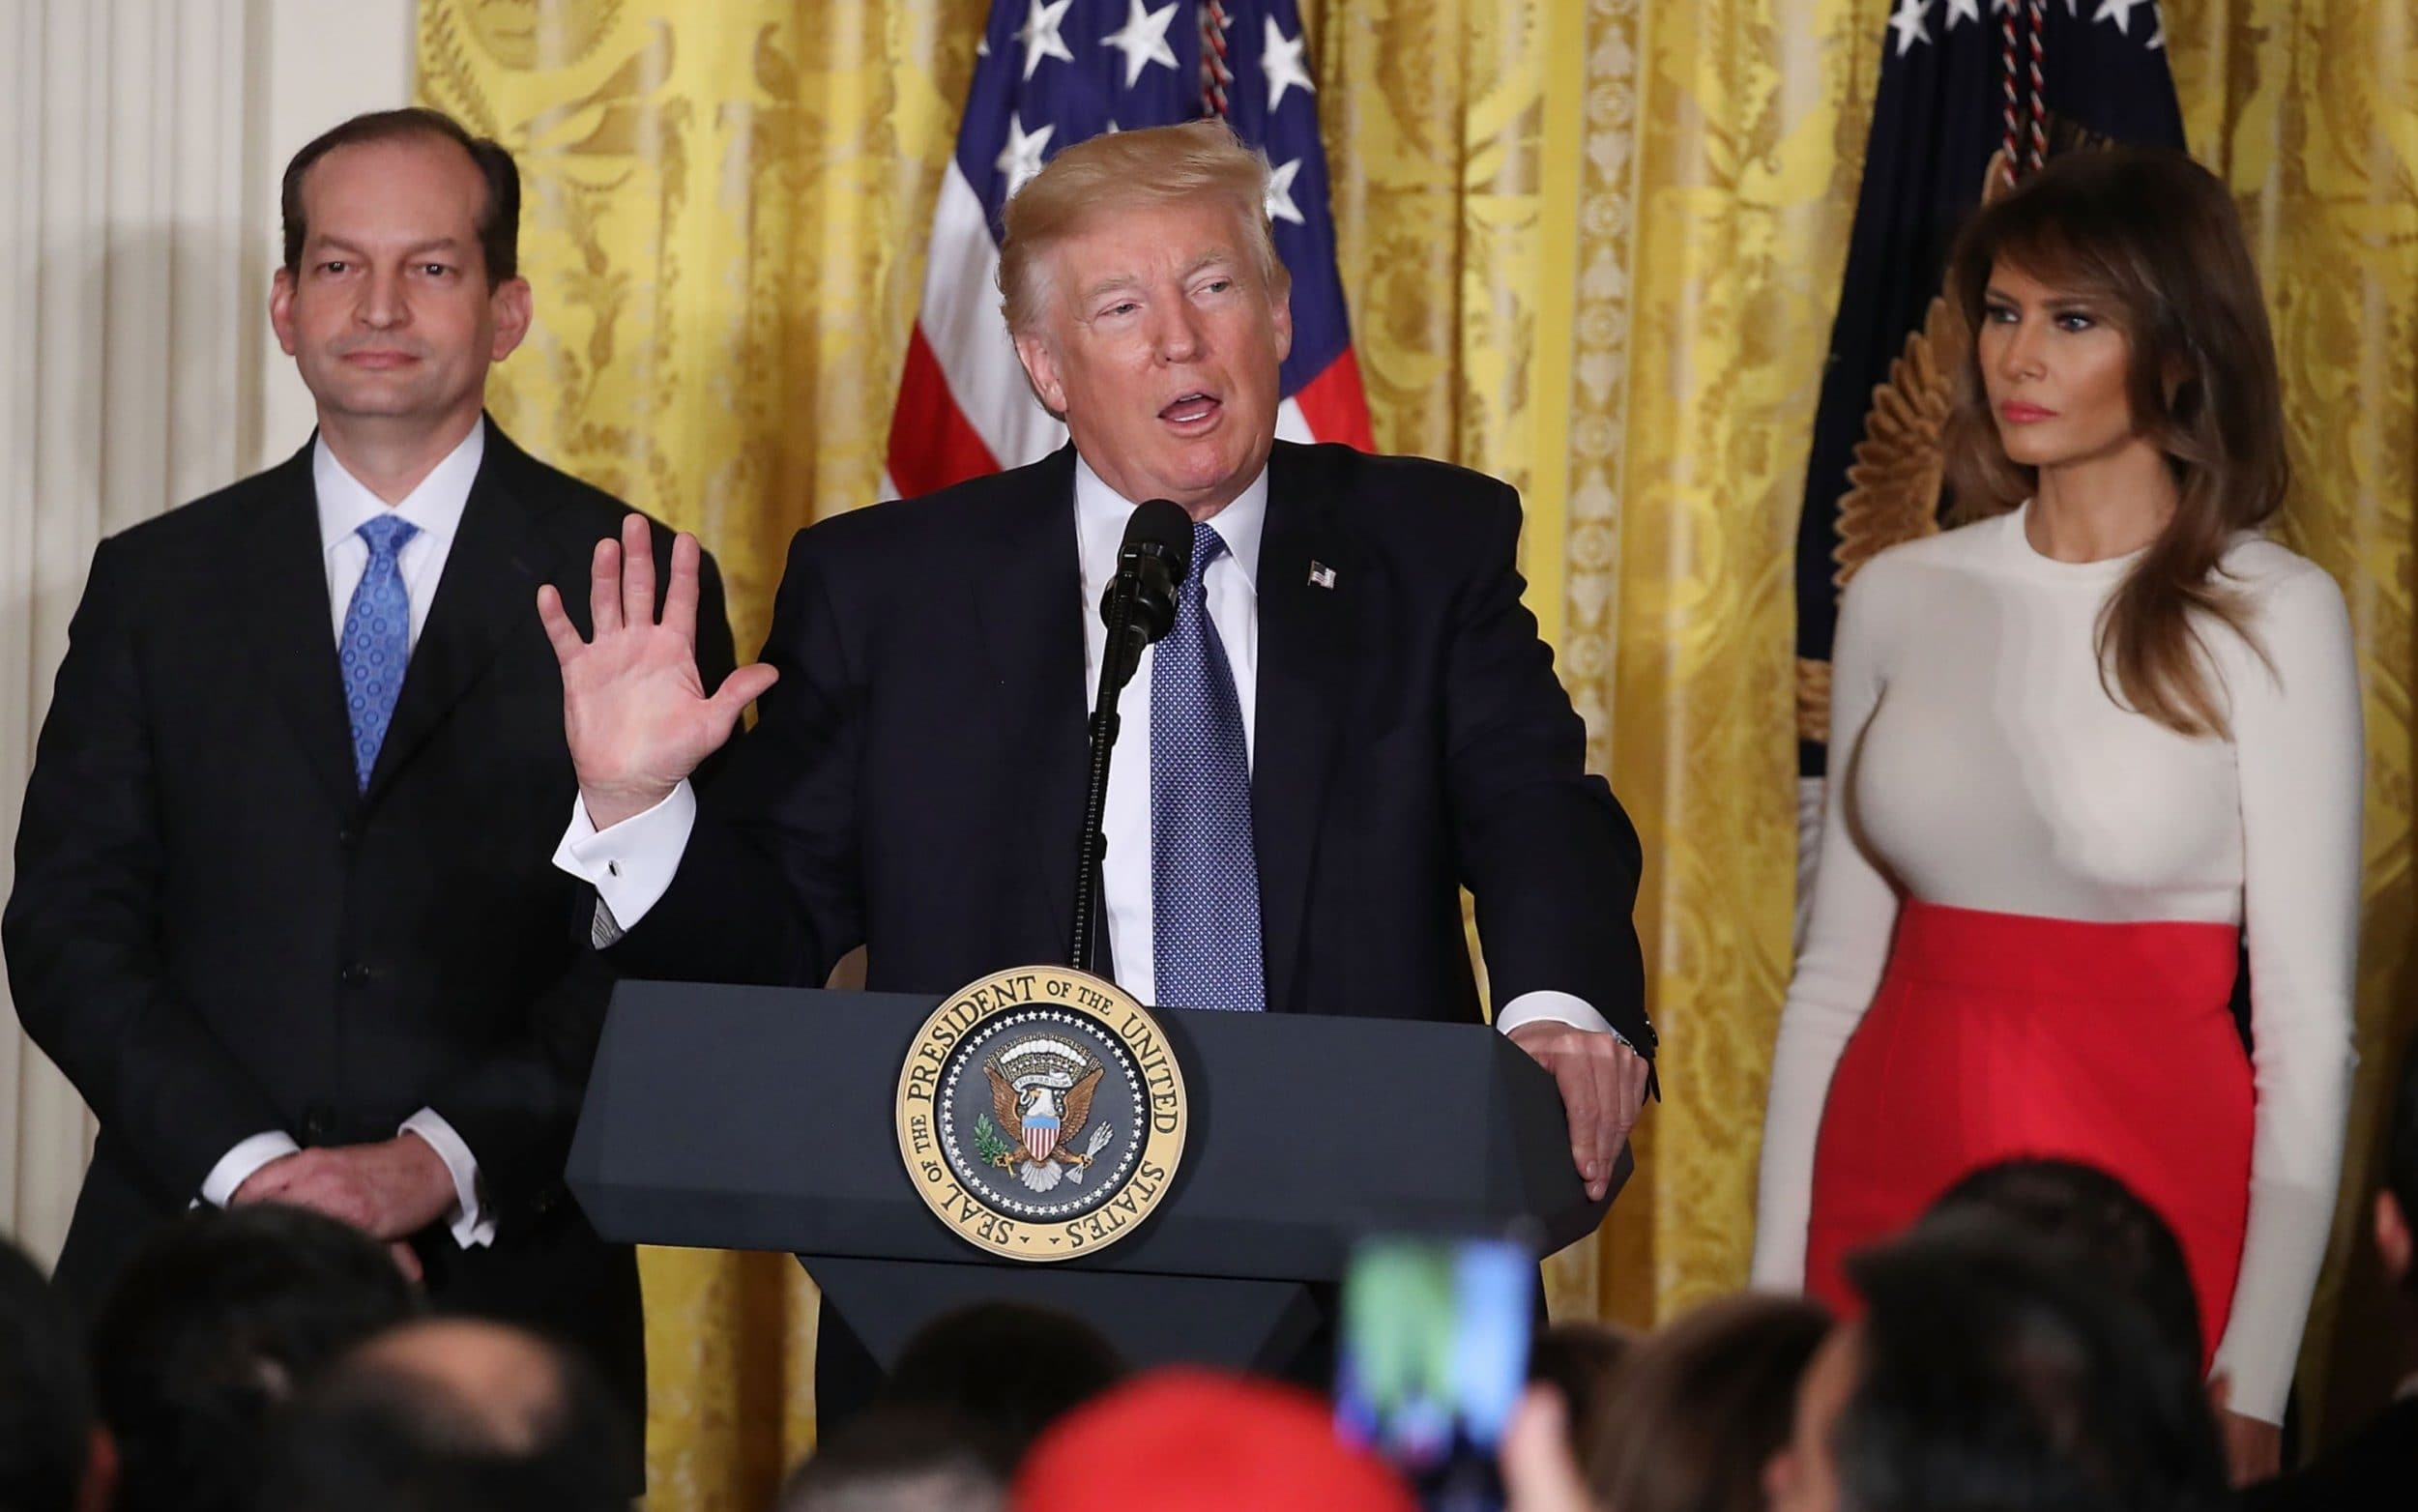 Donald Trumps labour secretary Alex Acosta resigns after outcry over Andrew Epstein plea deal